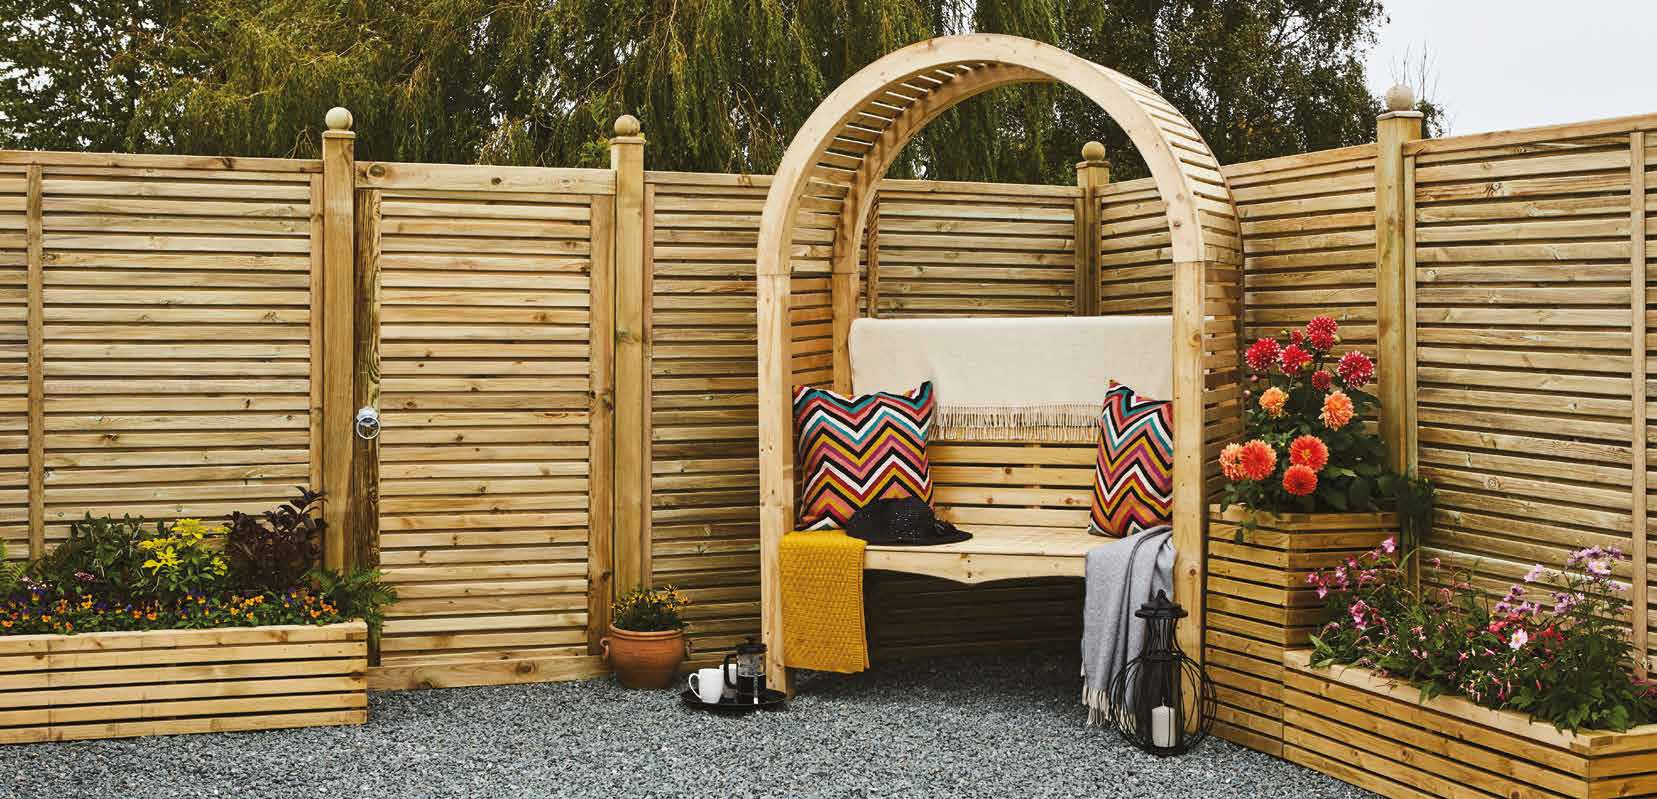 7 Garden Furniture Ideas For Outdoor Living - Knight Fencing